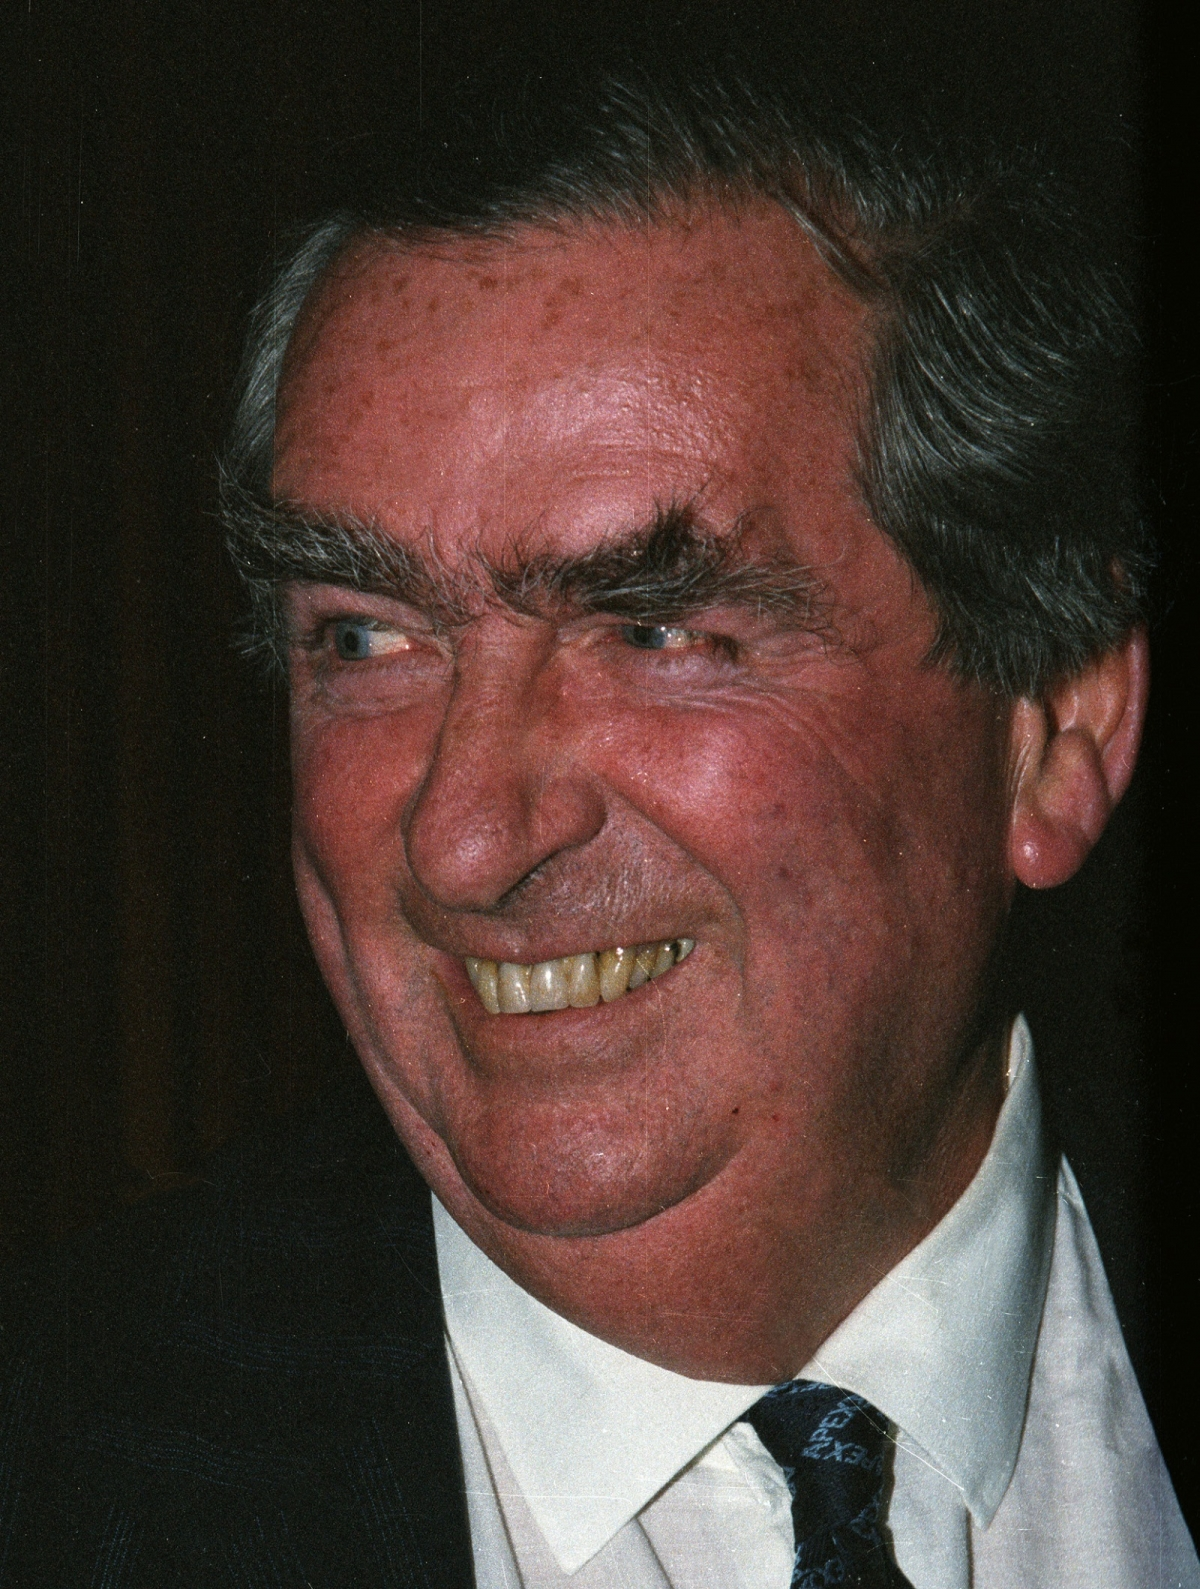 Denis Healey MP in 1986